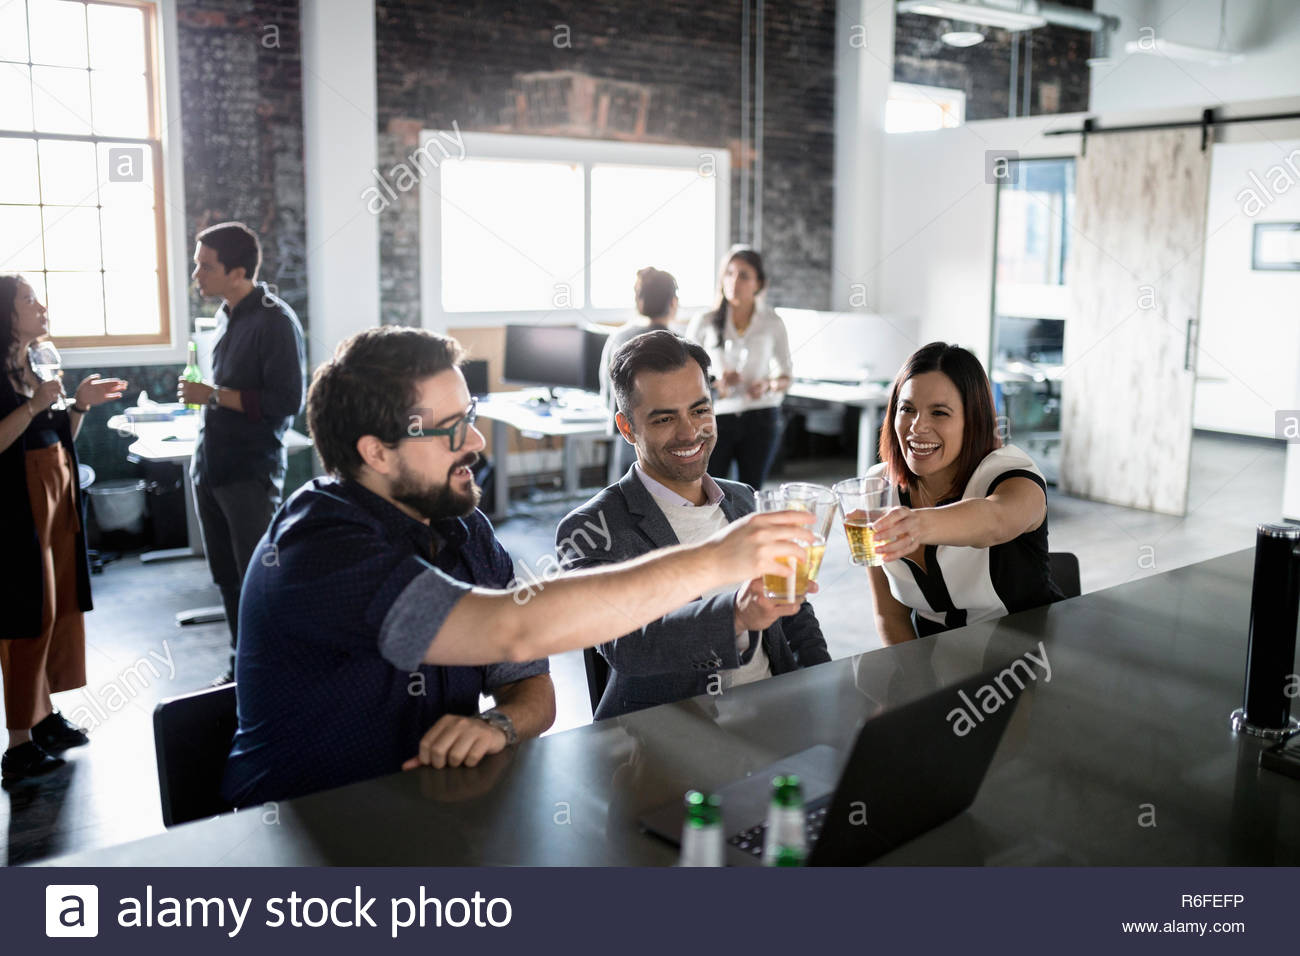 Creative business people toasting beer glasses in loft office - Stock Image